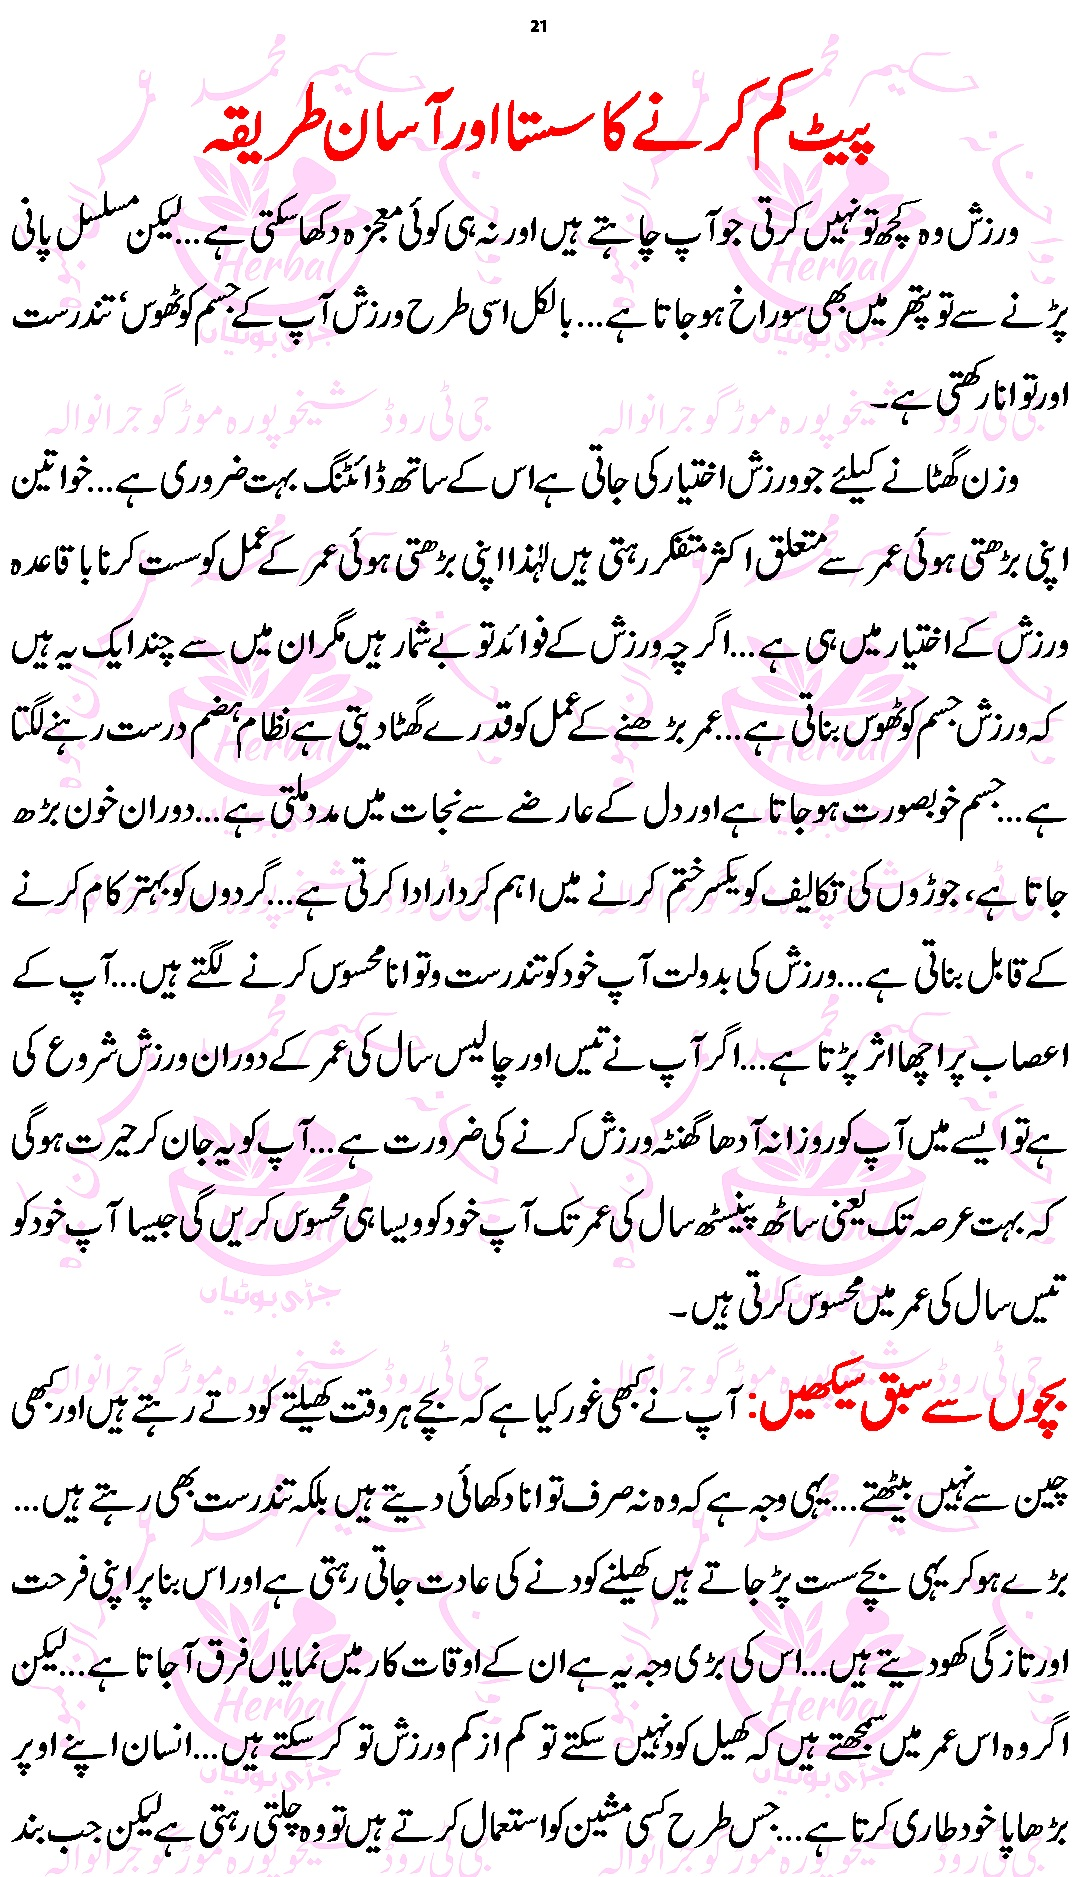 Diet plan for weight loss in urdu language ltt exercise for lose weight from belly and hips in urdu ccuart Image collections